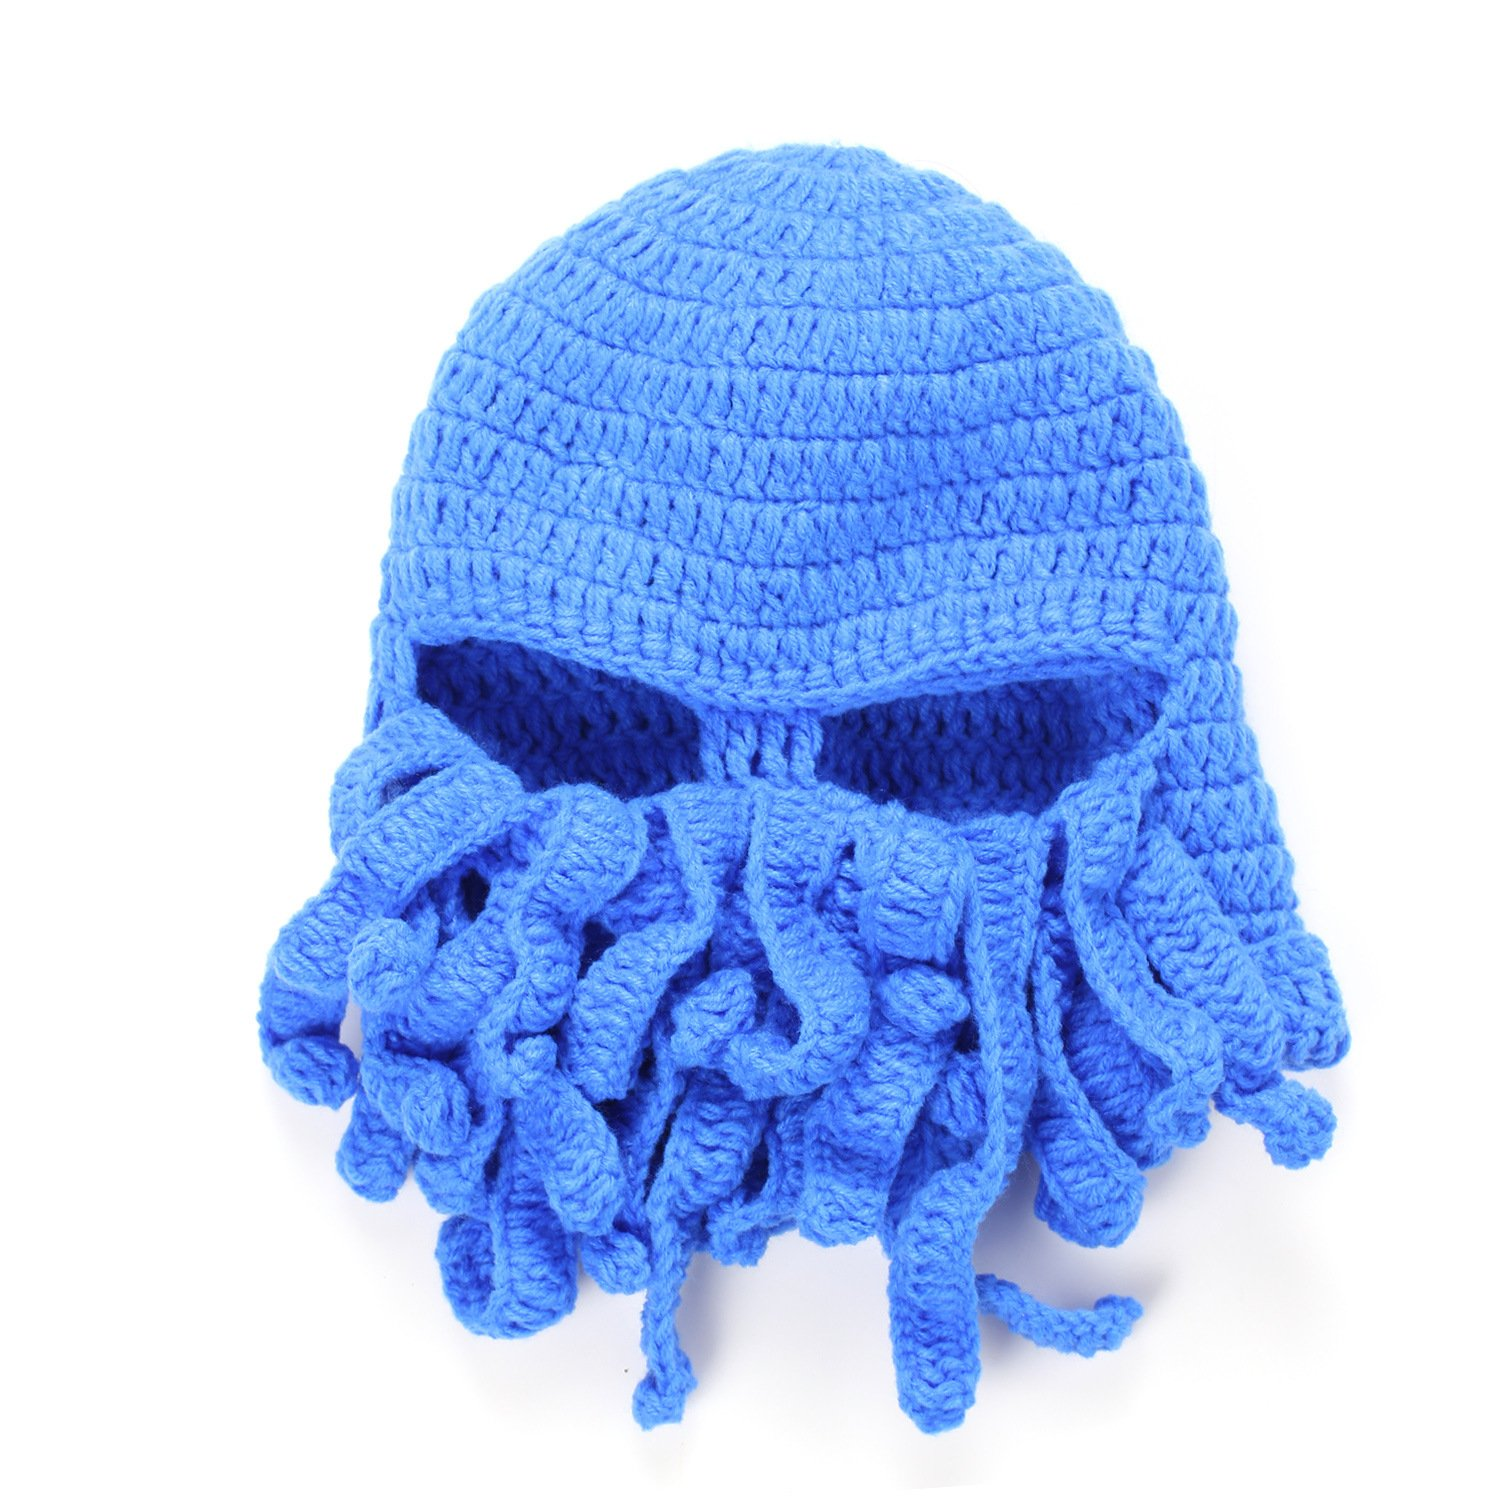 Butterme Unisex Winter Wind Ski Mask Barbarian Beard Hat Tentacle Krake Strick Beanie Cap Handgemachtes Hat